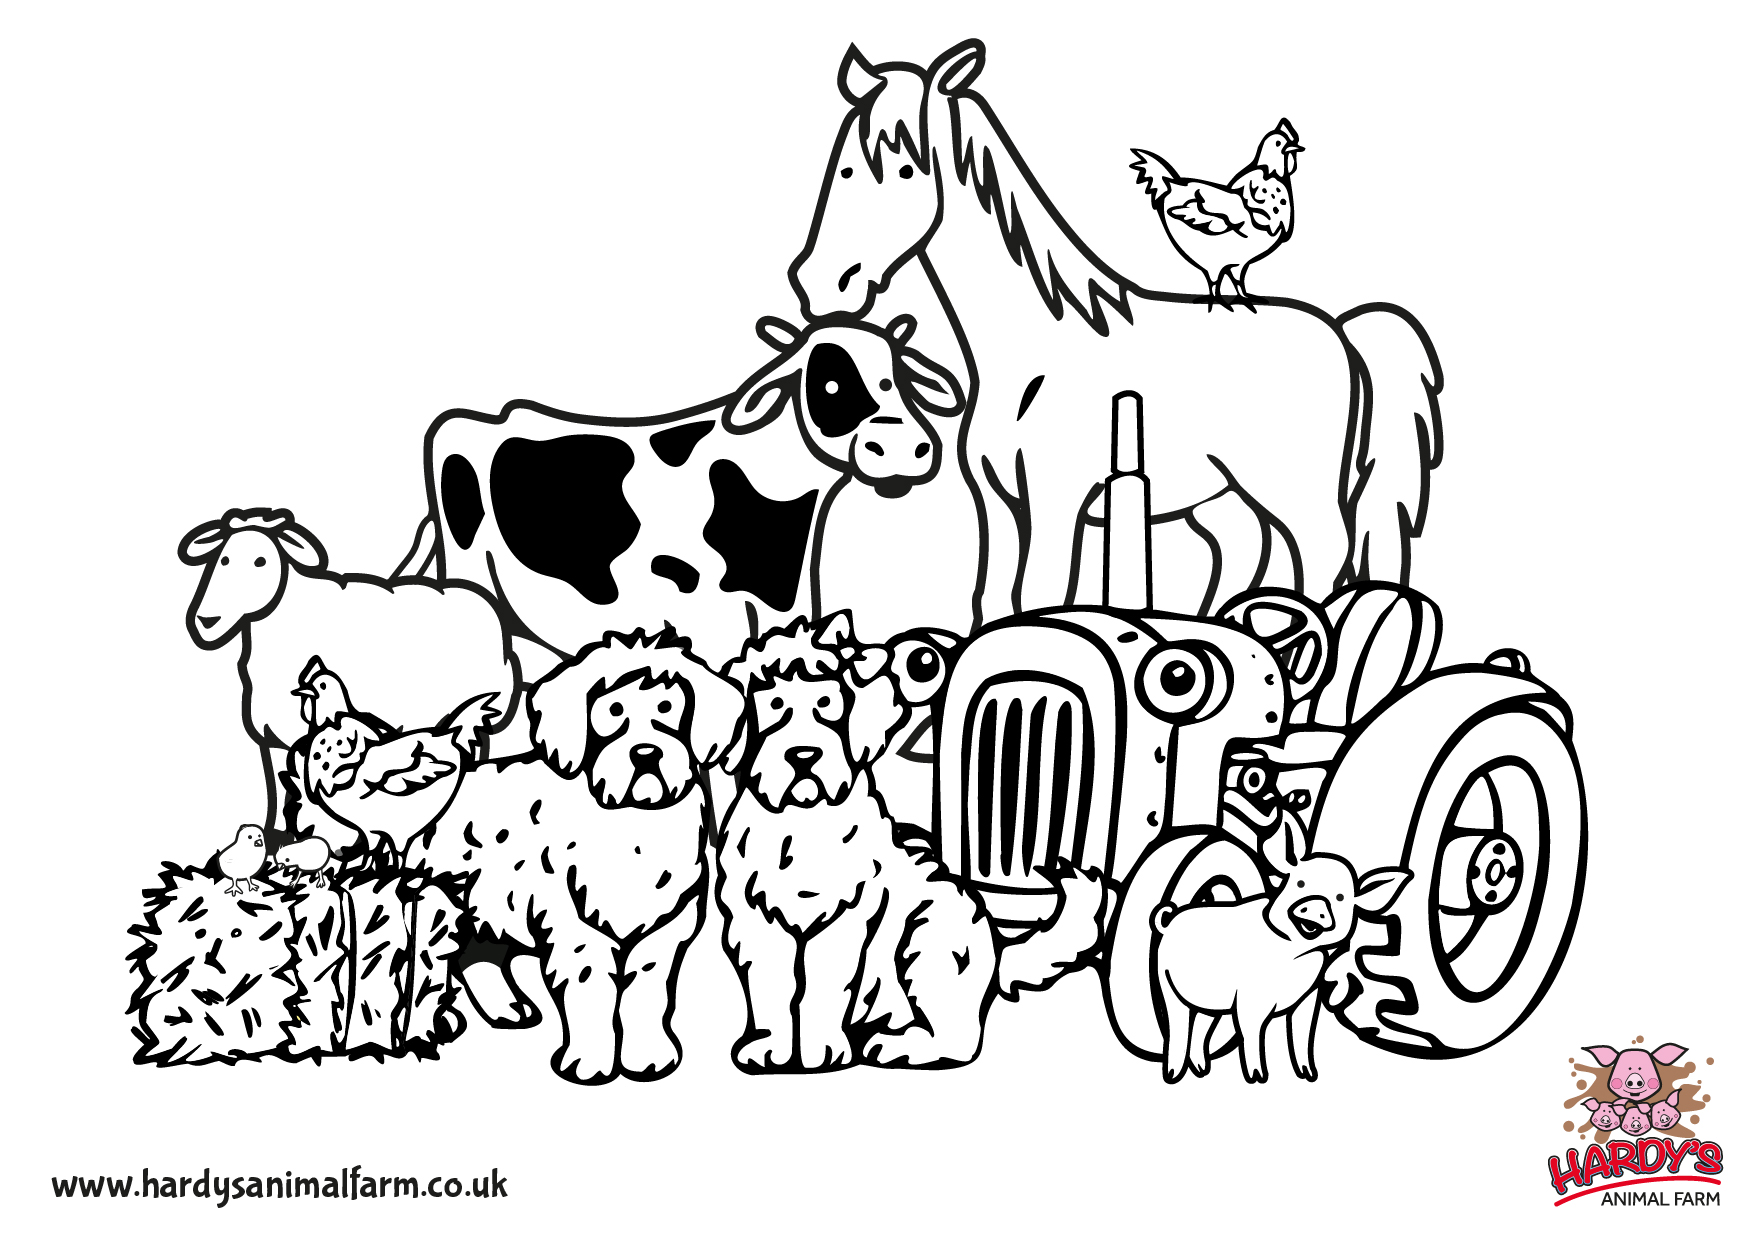 Co Colouring In Sheets Detailed - Colouring pages hardys animal farm